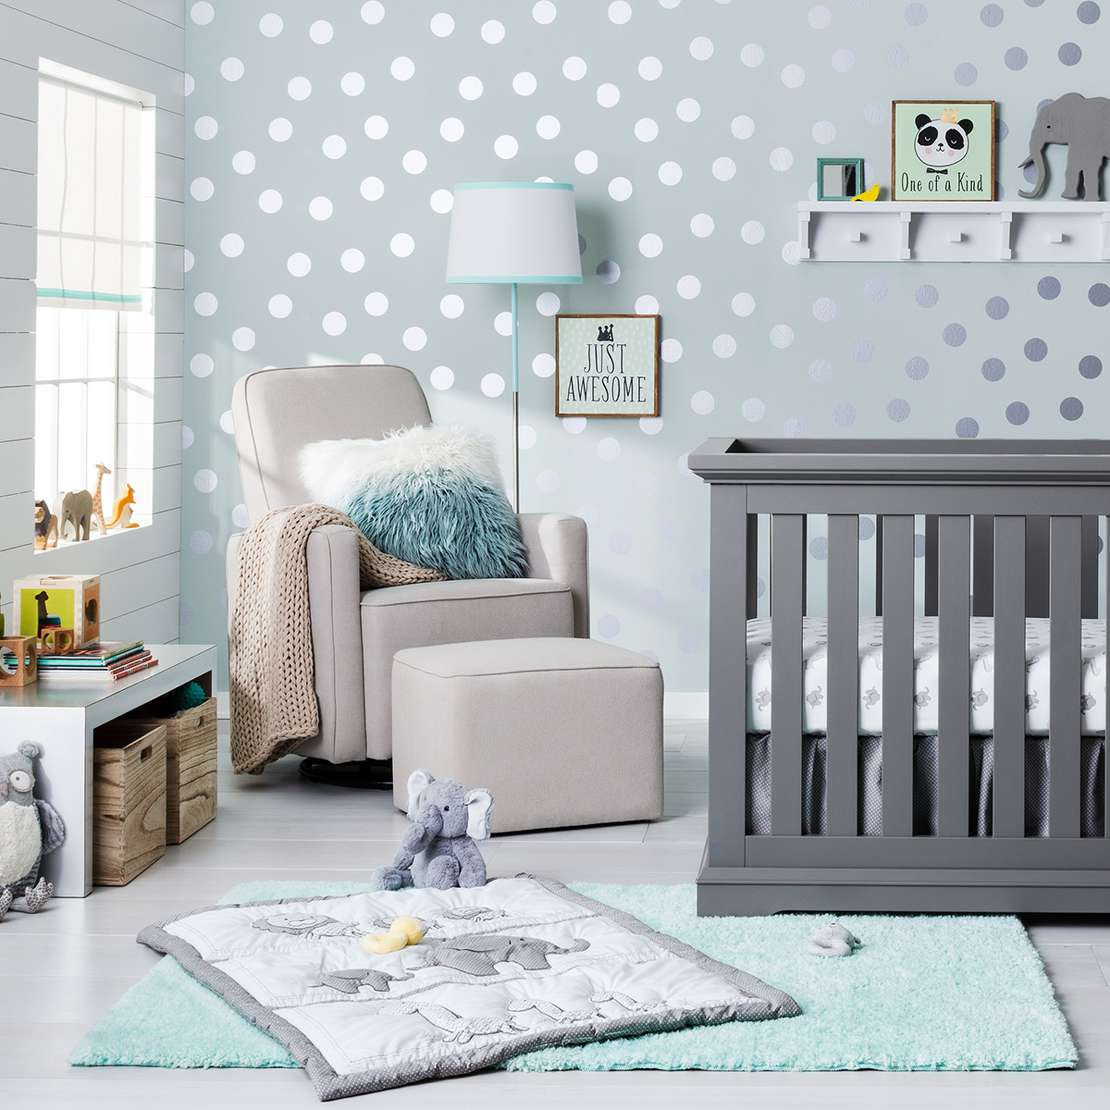 Nursery ideas inspiration target for Room decoration items